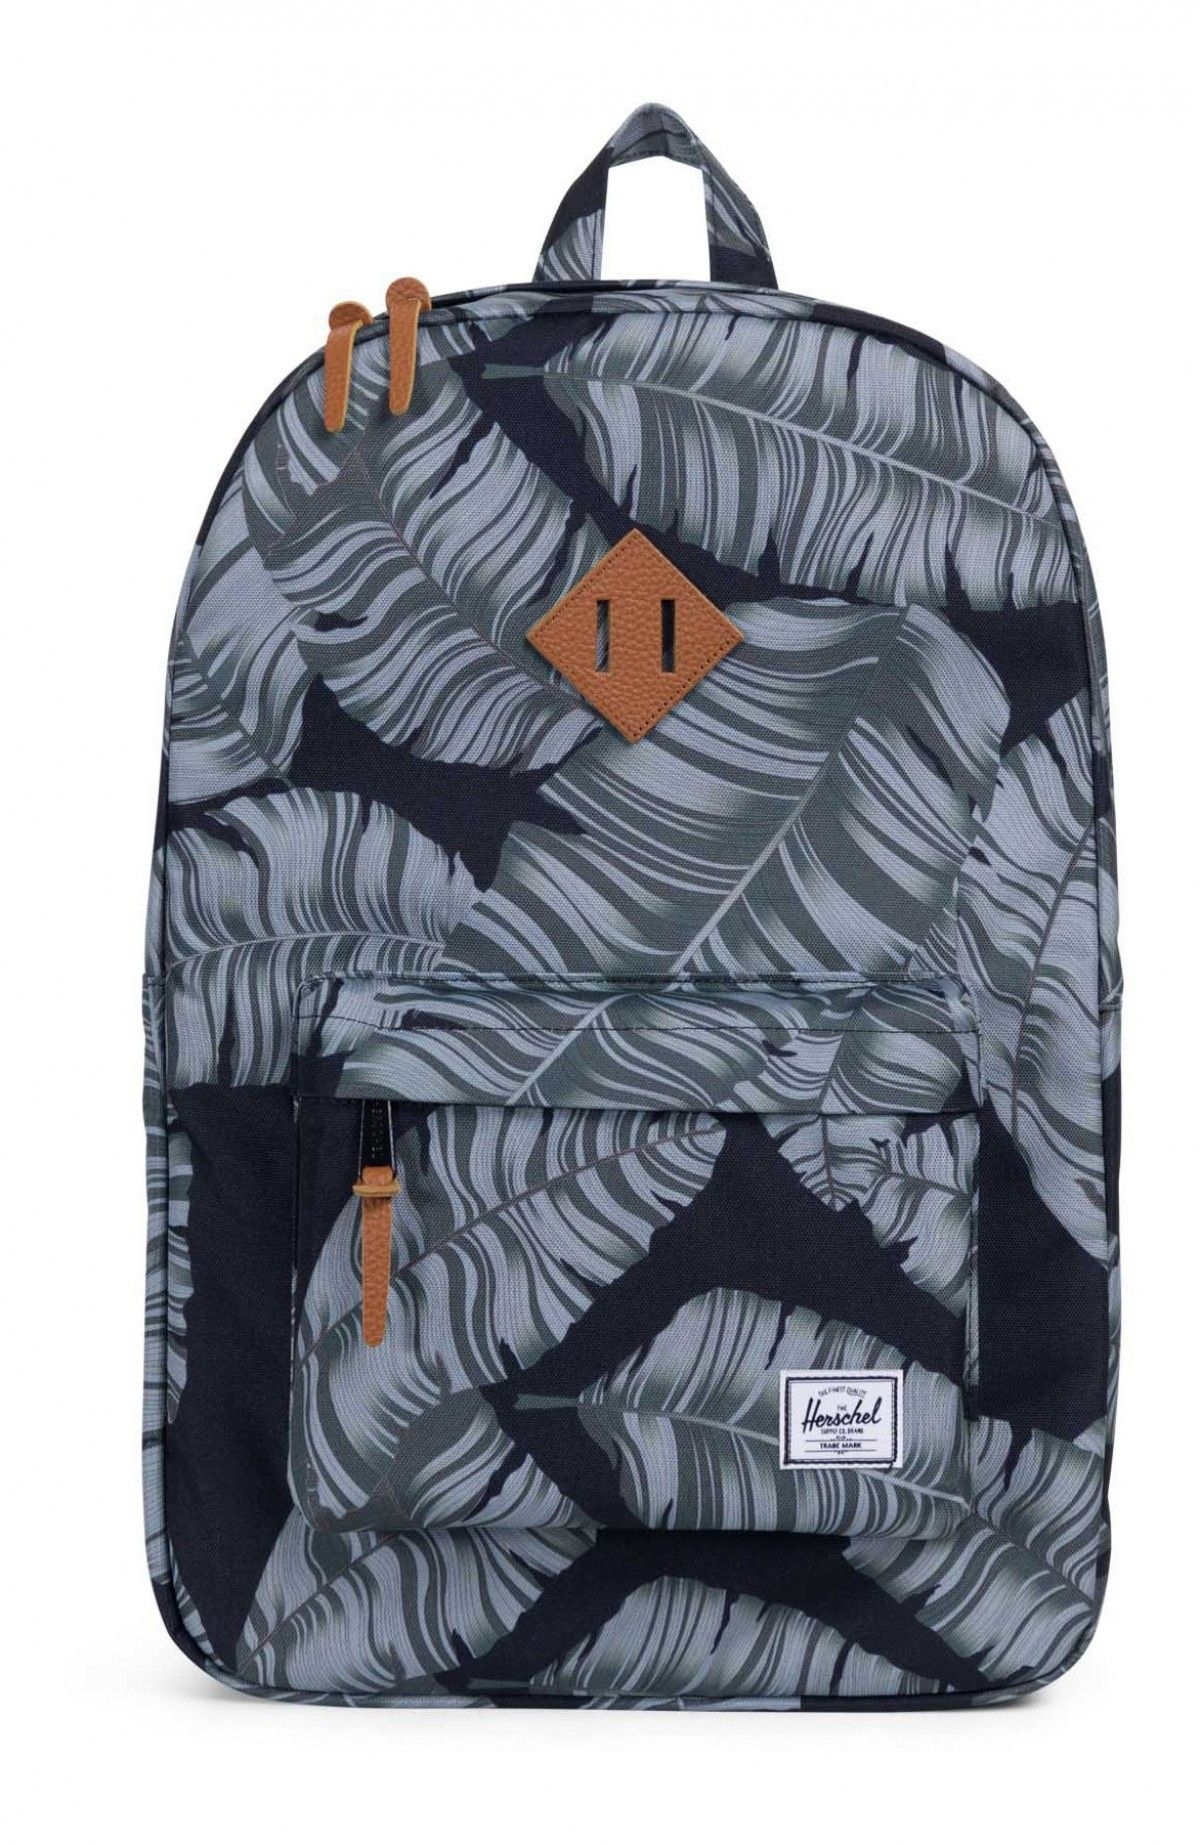 808fafb453 Herschel Heritage Backpack 600D Poly Black Palm